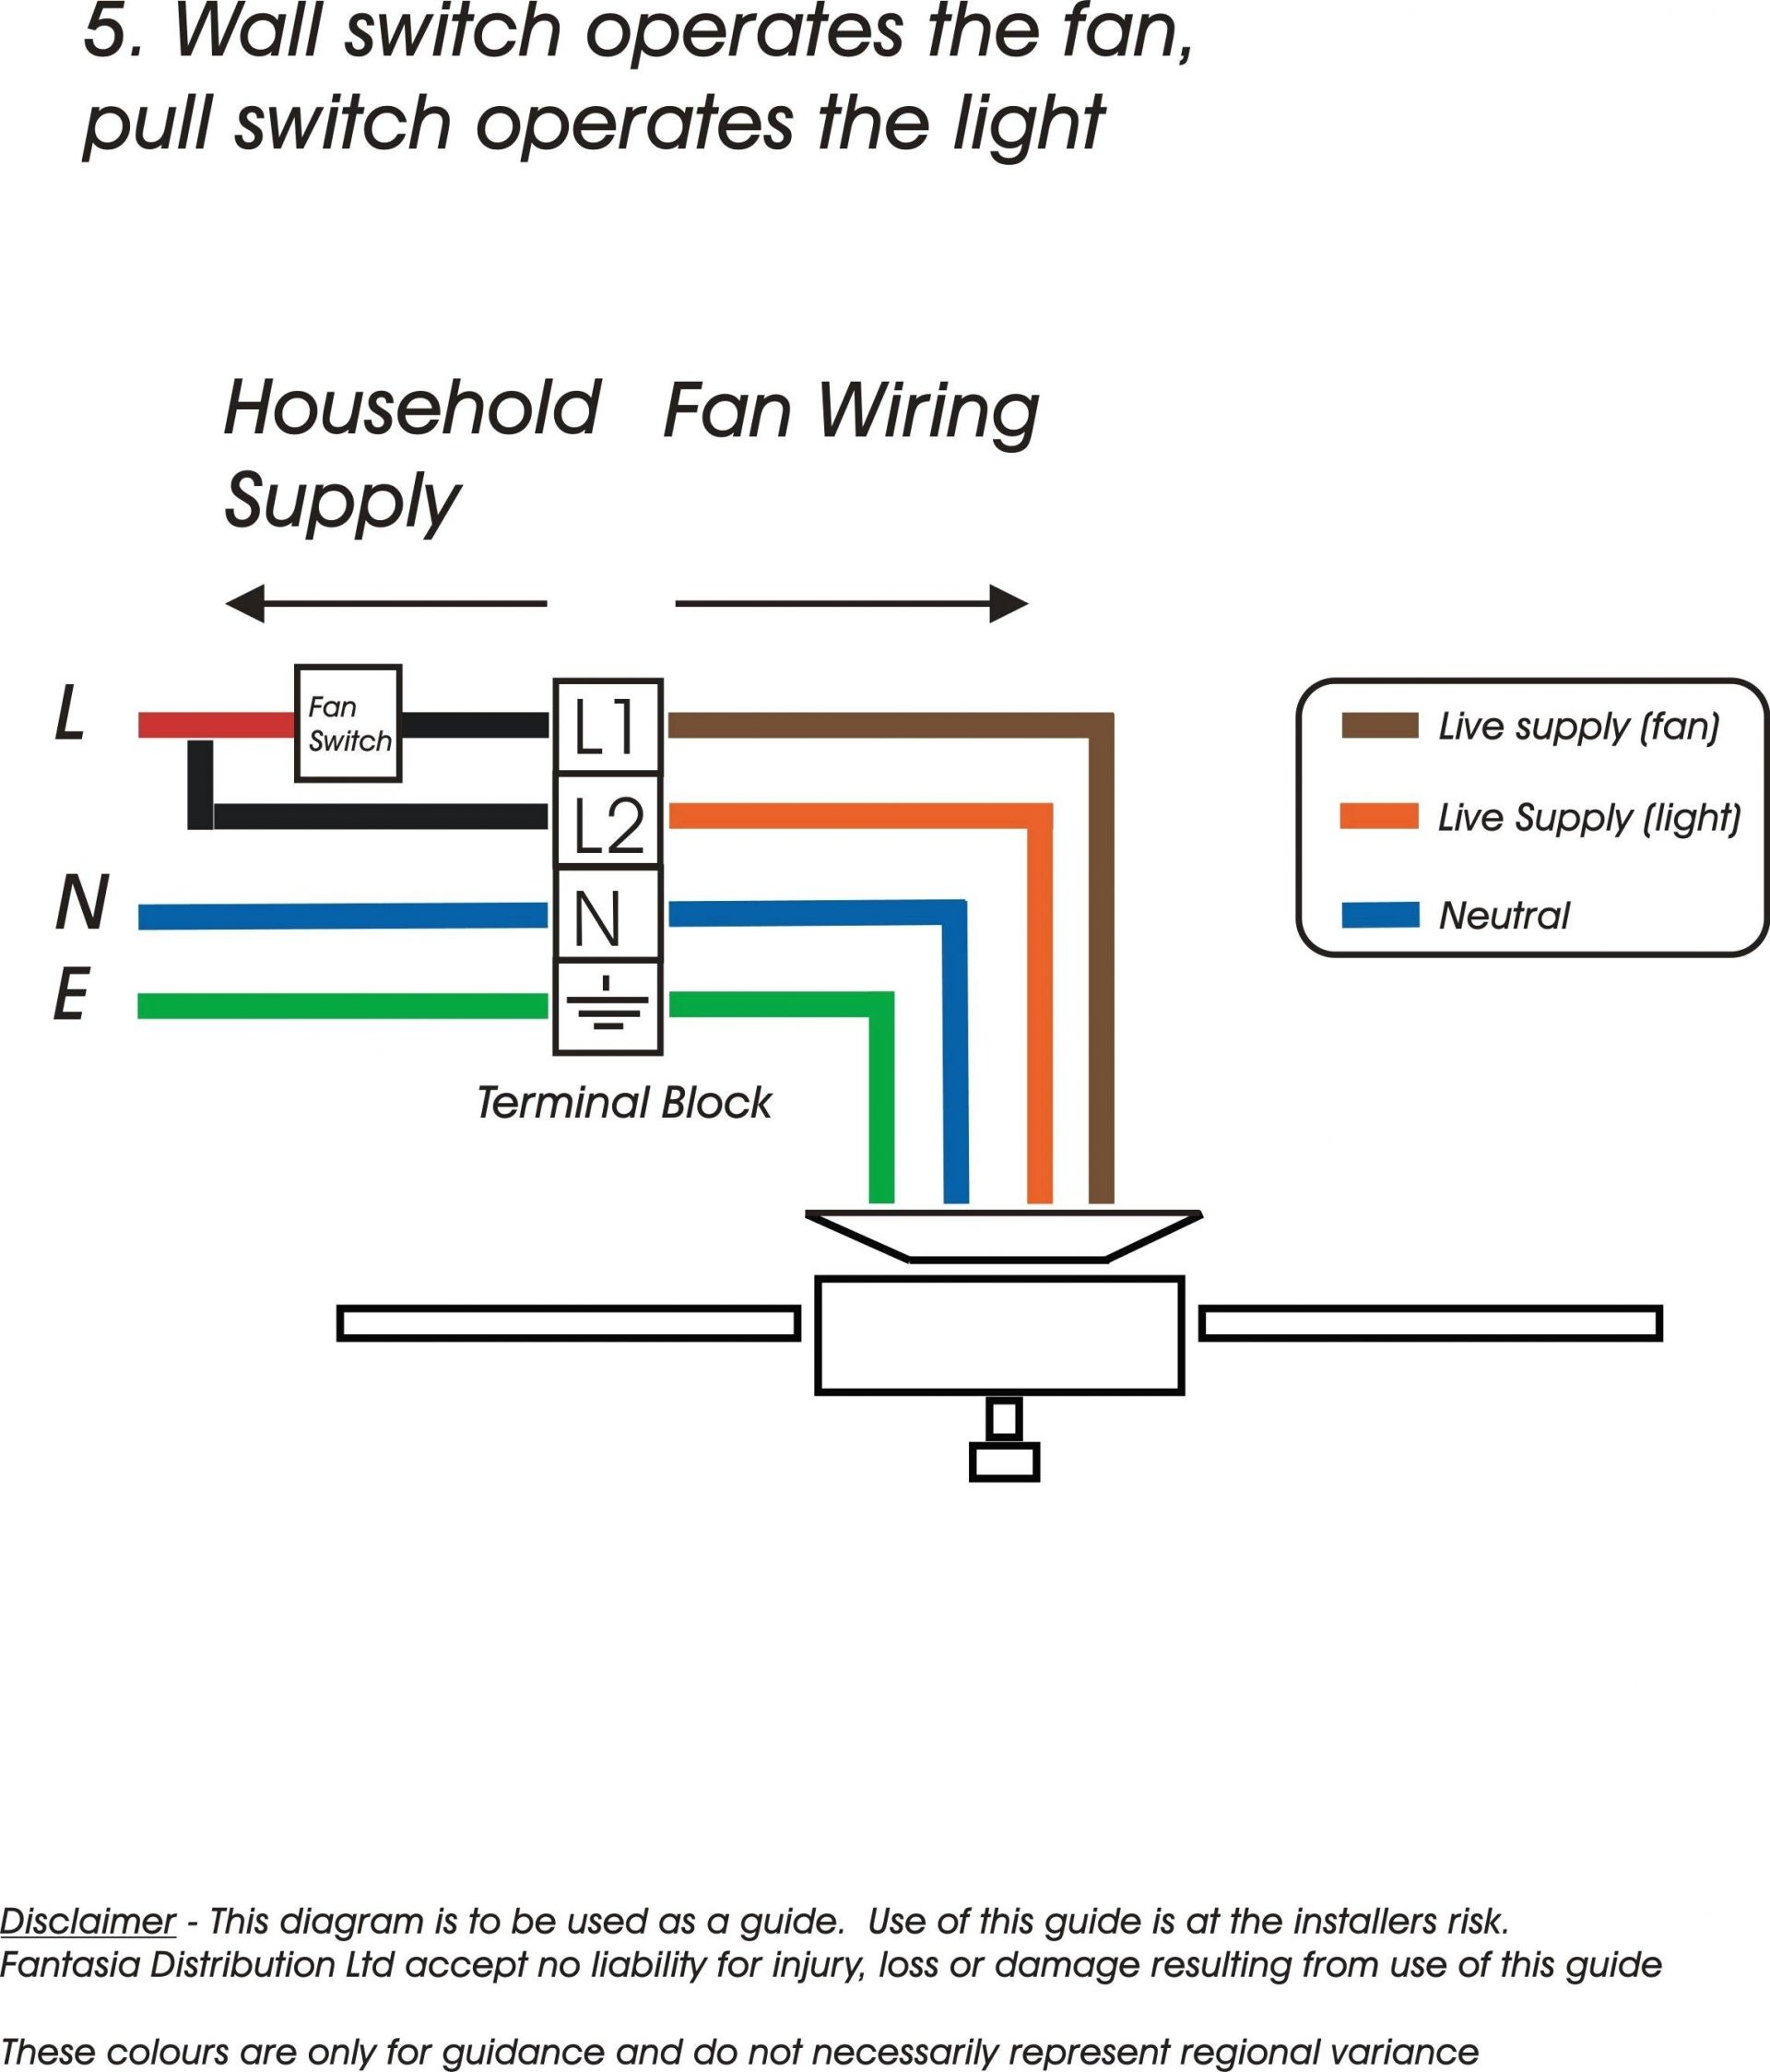 Led Wiring Diagram from detoxicrecenze.com